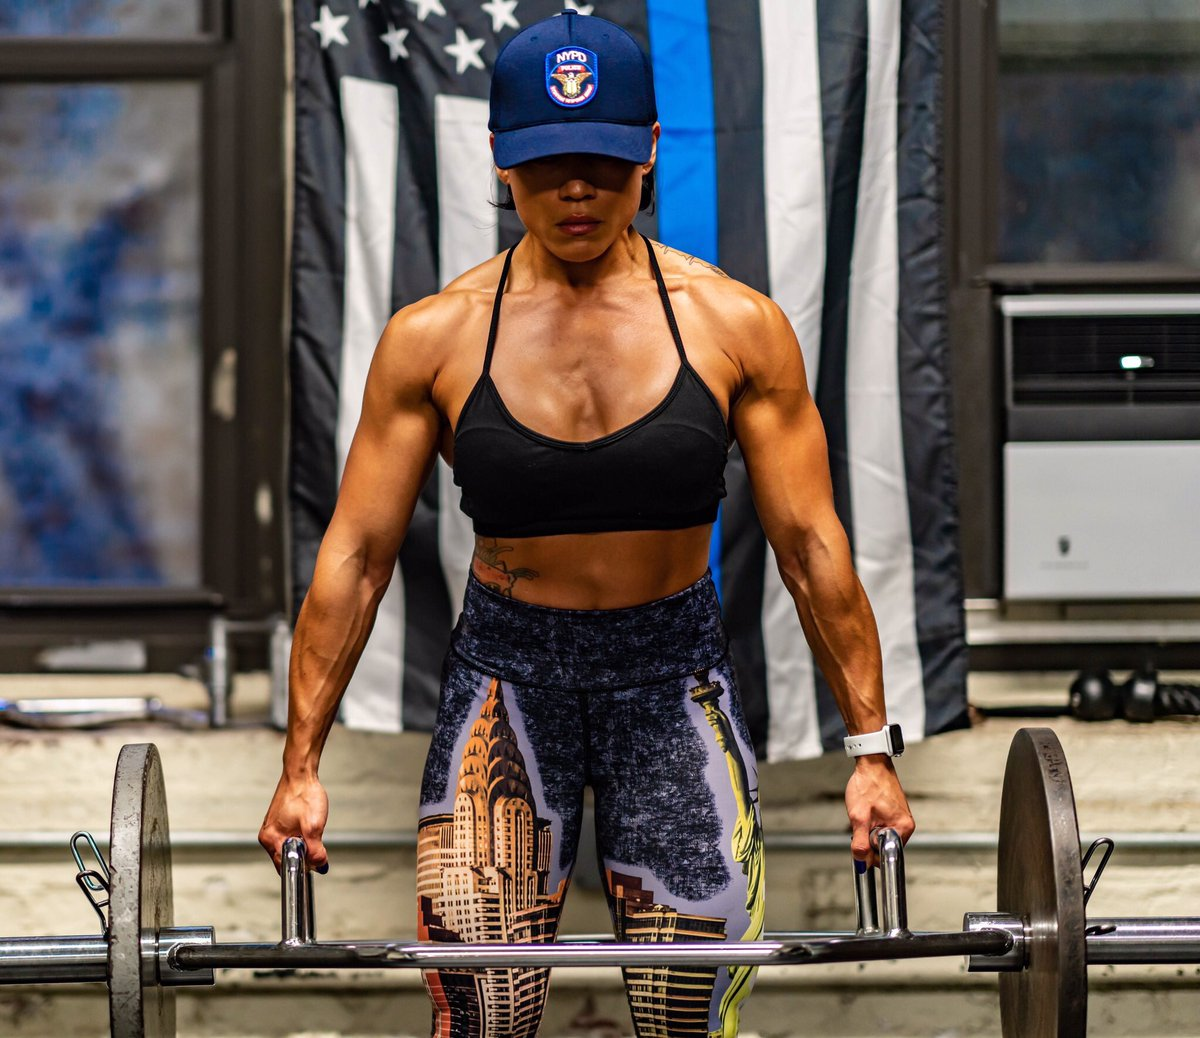 Word hard, play hard! 💪🏋️♀️  Officer Camacho from the Strategic Response Group has our vote for #MondayMotivation. She trains hard to protect this city and participates in fitness competitions when she's off duty. #WomensHistoryMonth